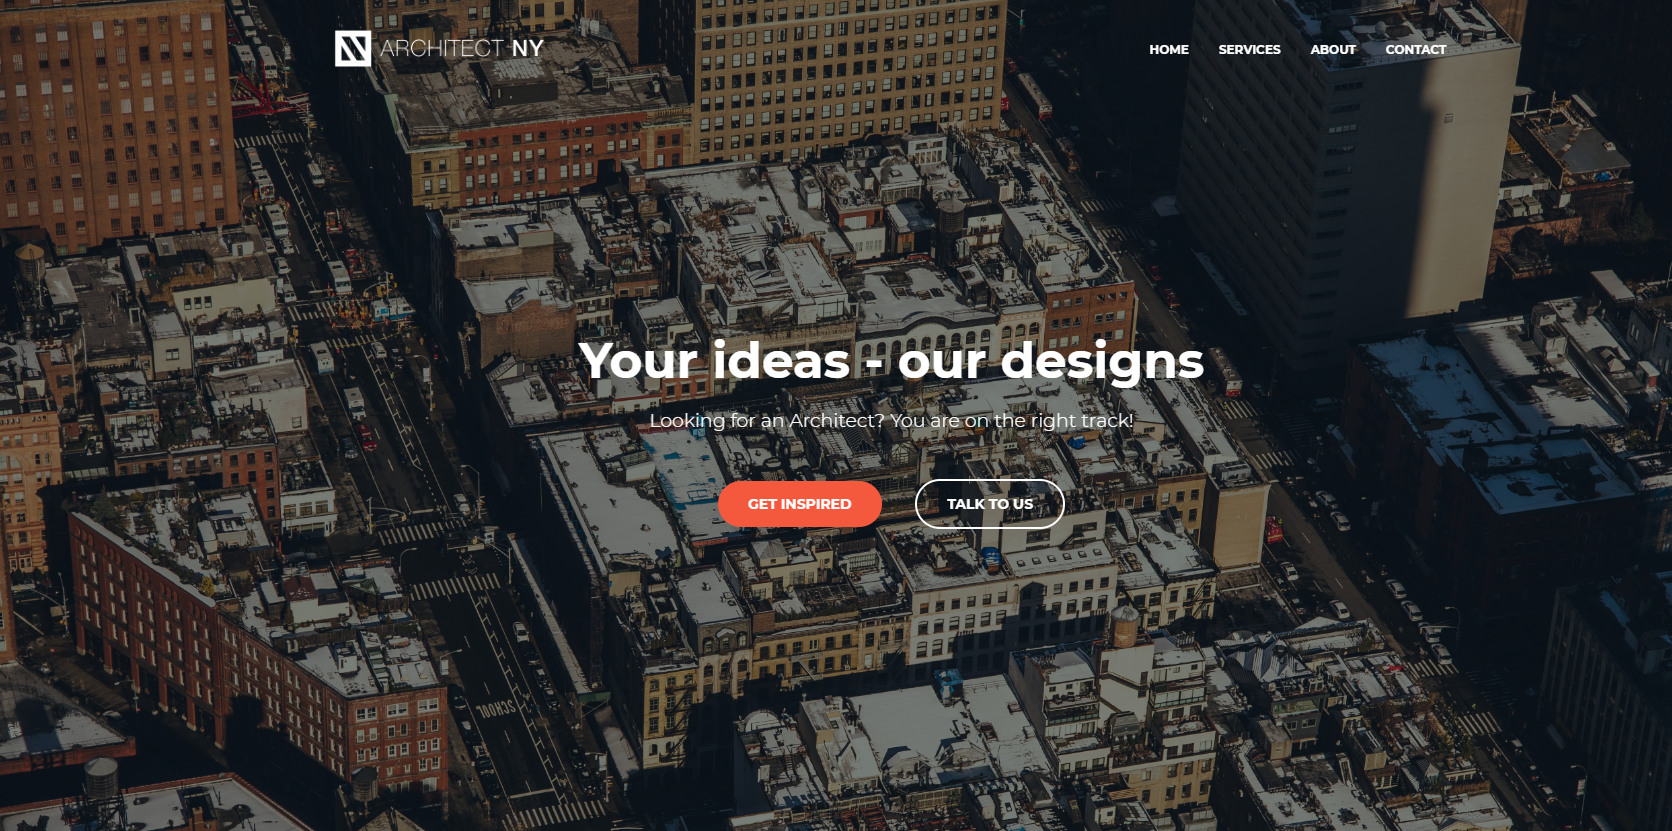 architect ny simple landing page example